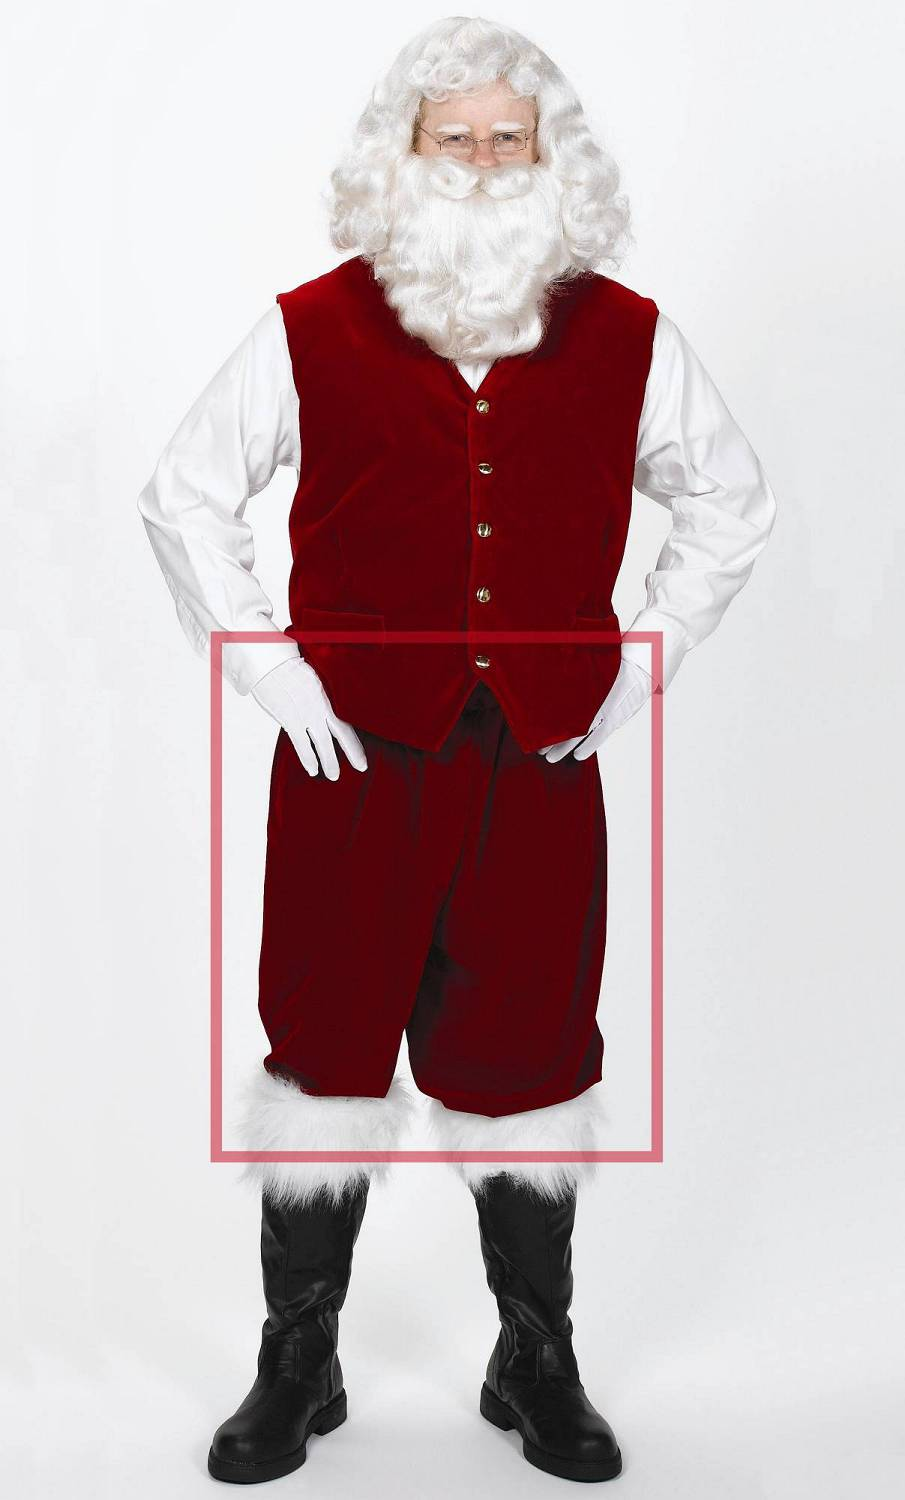 Santa-Claus-Pants-USA-02A